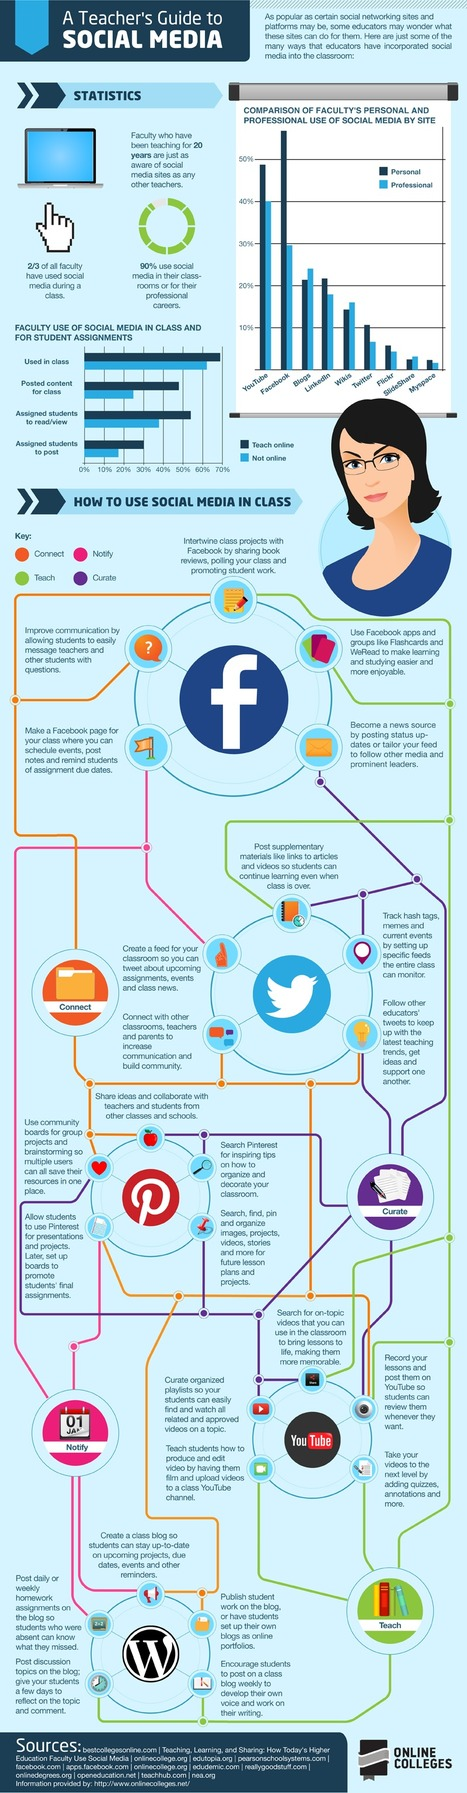 25 Ways Teachers Can Integrate Social Media Into Education [Infographic] | Social Media and its influence | Scoop.it